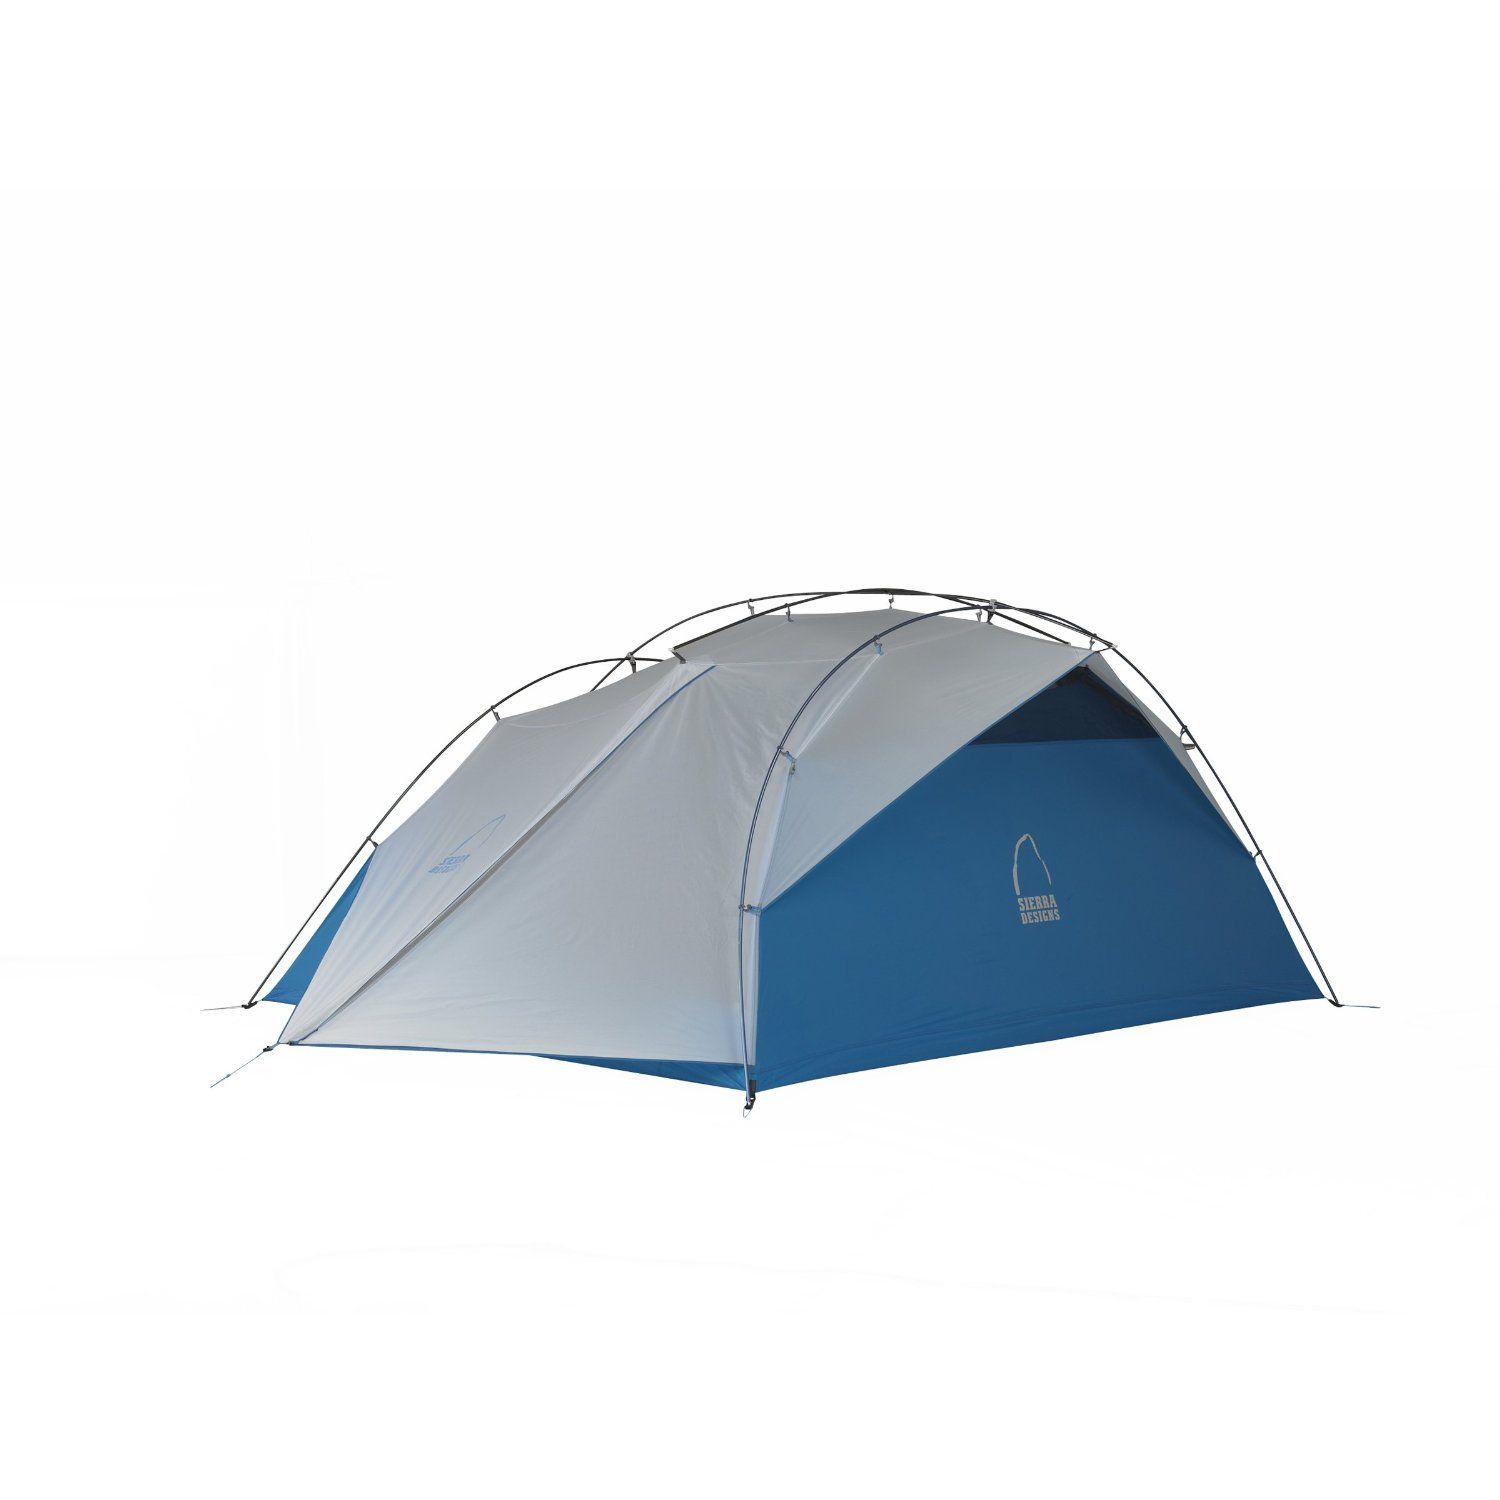 The Sierra Designs Flash Ultralight Backpacking tent is an award winning tent that offers top of the line features in comfort convenience performance ...  sc 1 st  Pinterest & Sierra Designs Flash 3 Tent | Ultralight Backpacking Tent ...